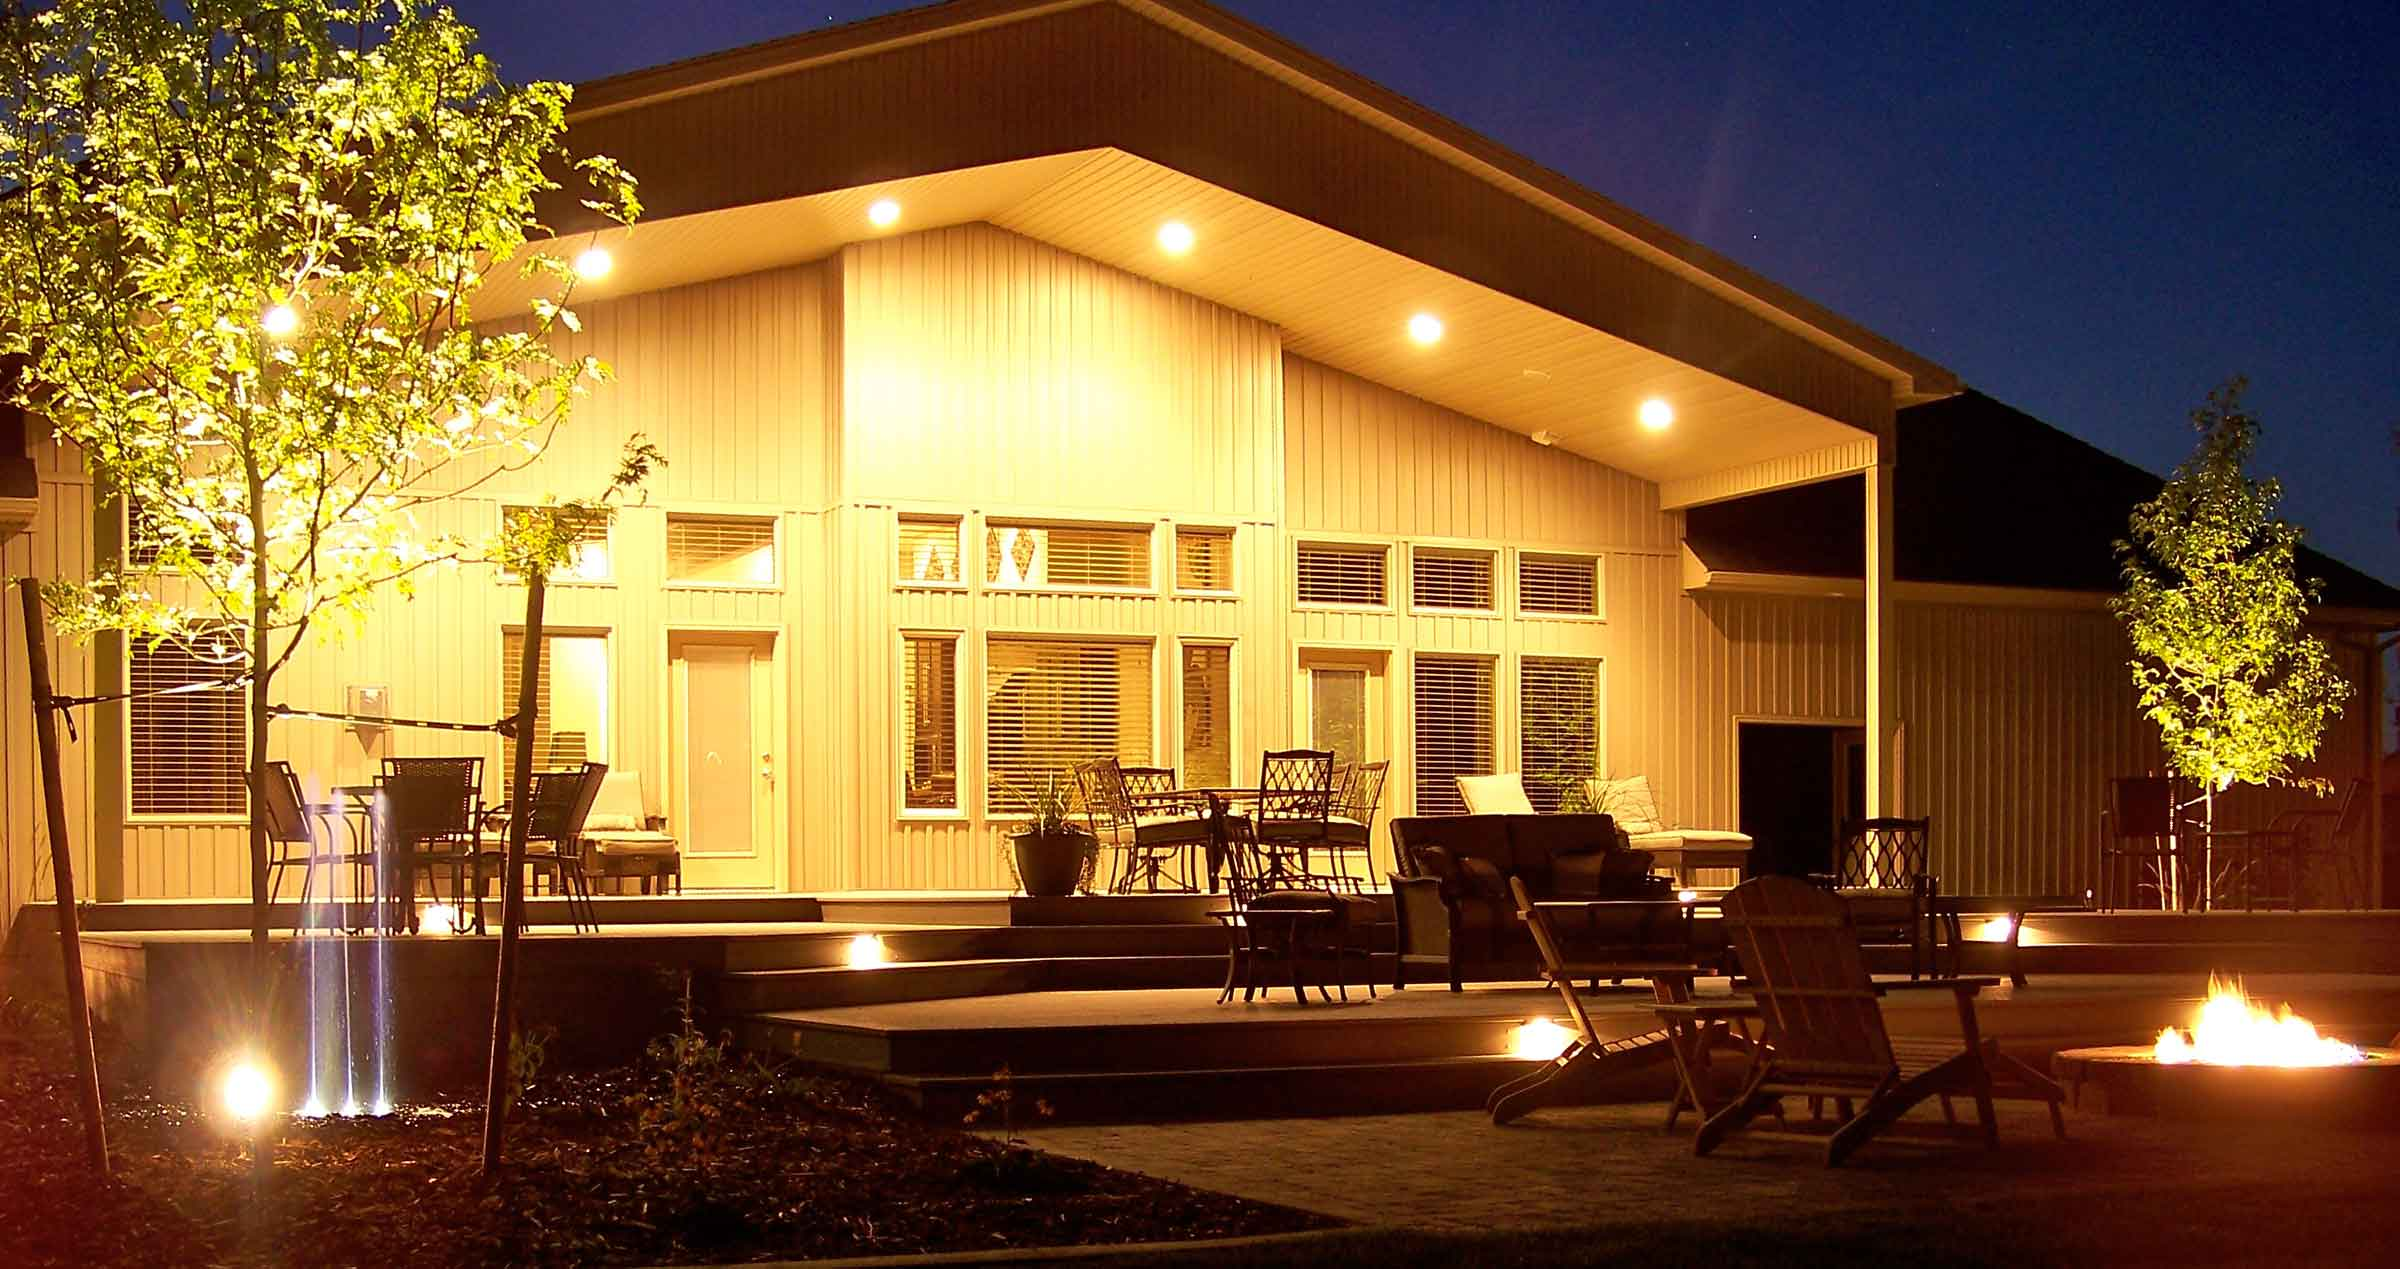 How Much Will It Cost To Install Low Voltage And LED Landscape Lighting In Idaho?